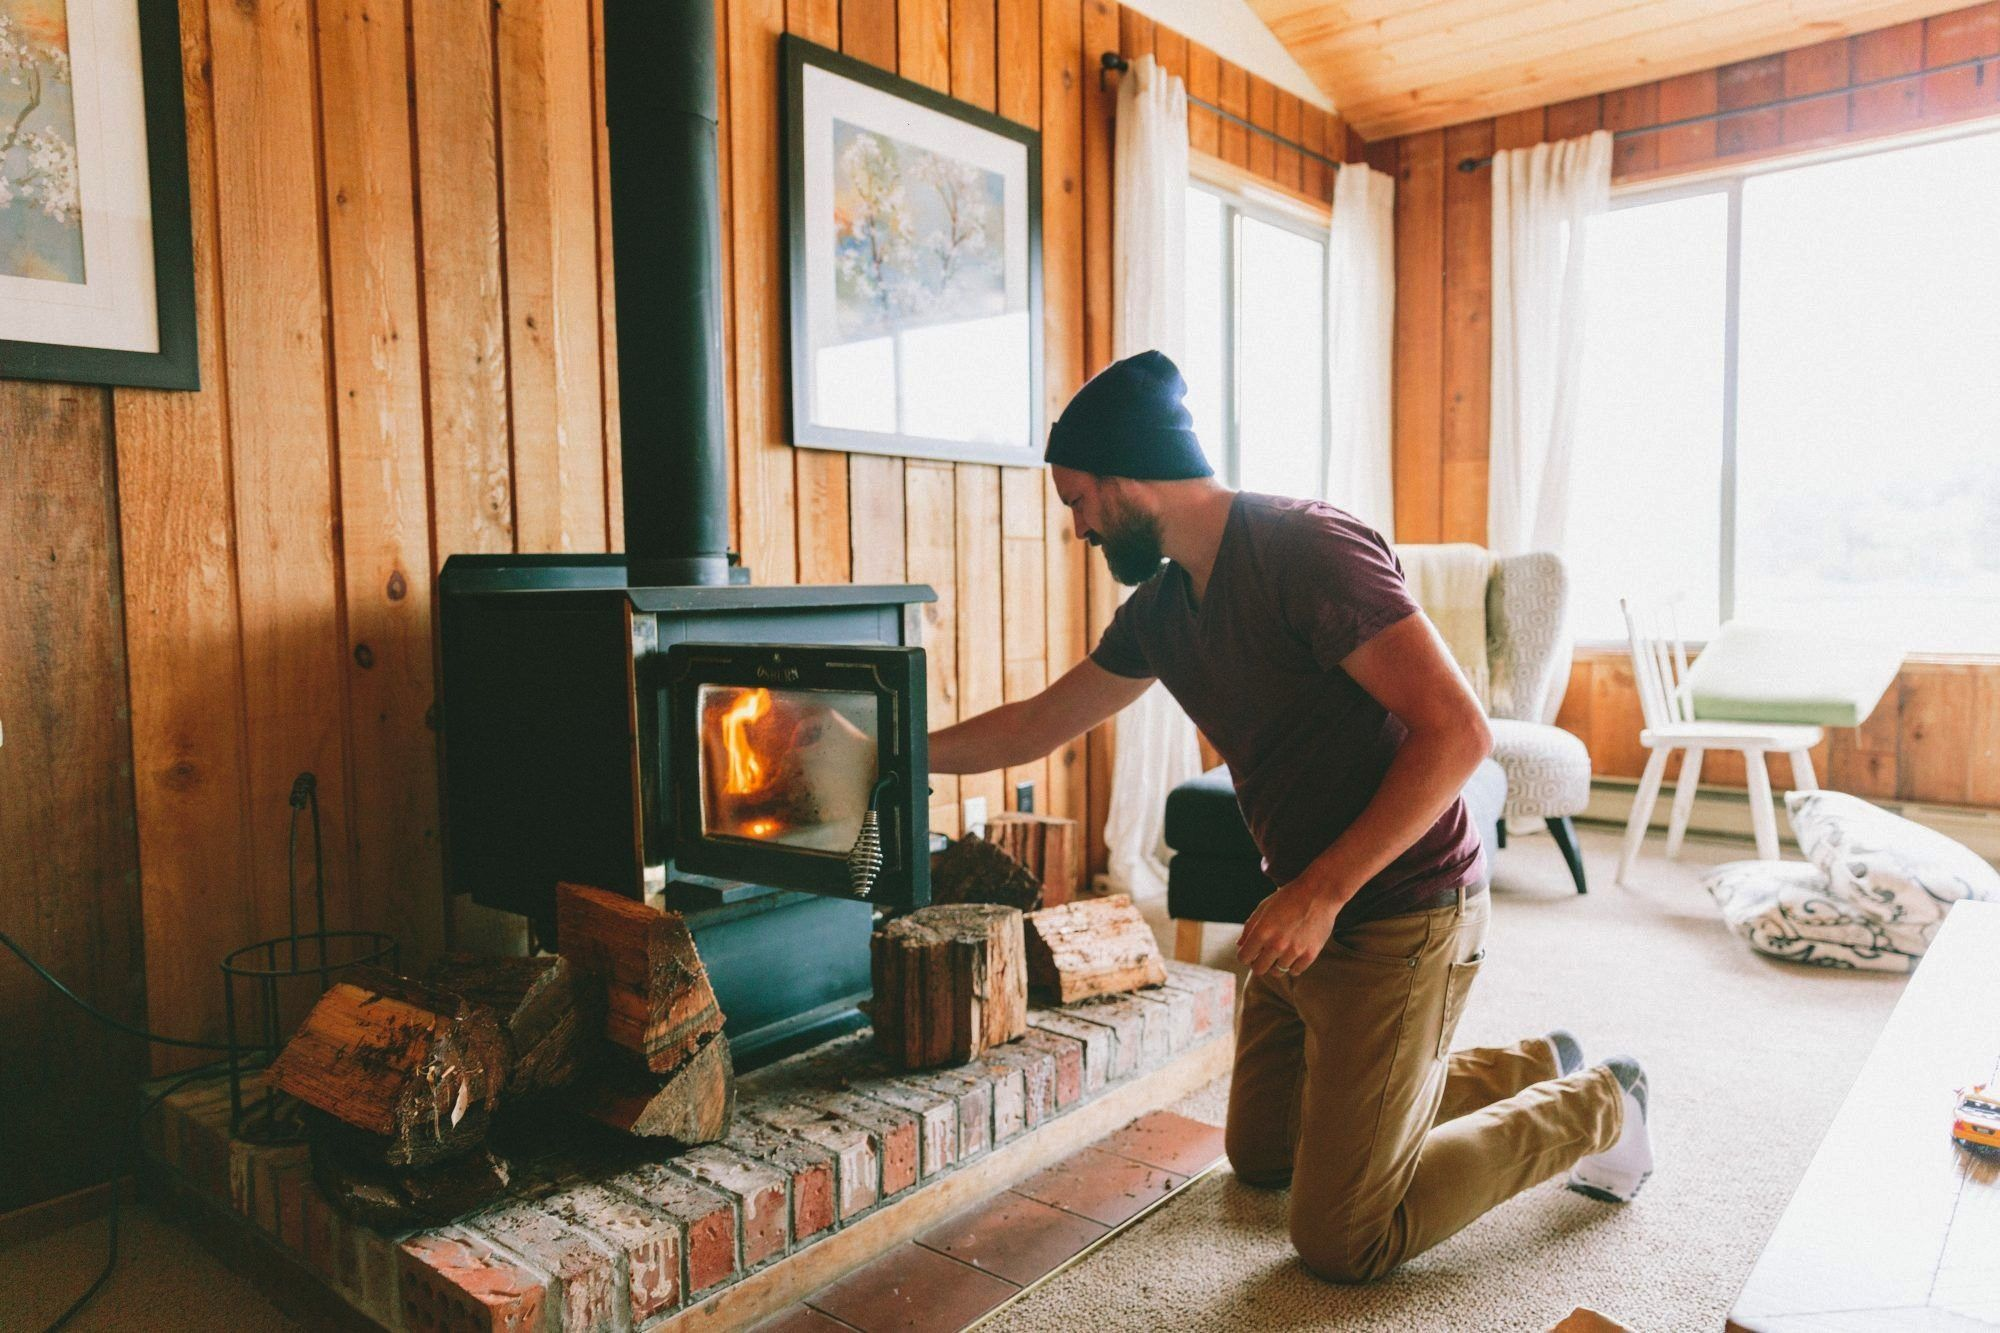 Retreatcabininspired Cabininspired Retreat Décor These Ideas Decor Home Cozy Turn I In 2020 Wood Stove Wood Burning Fireplace Inserts Wood Burning Fireplace